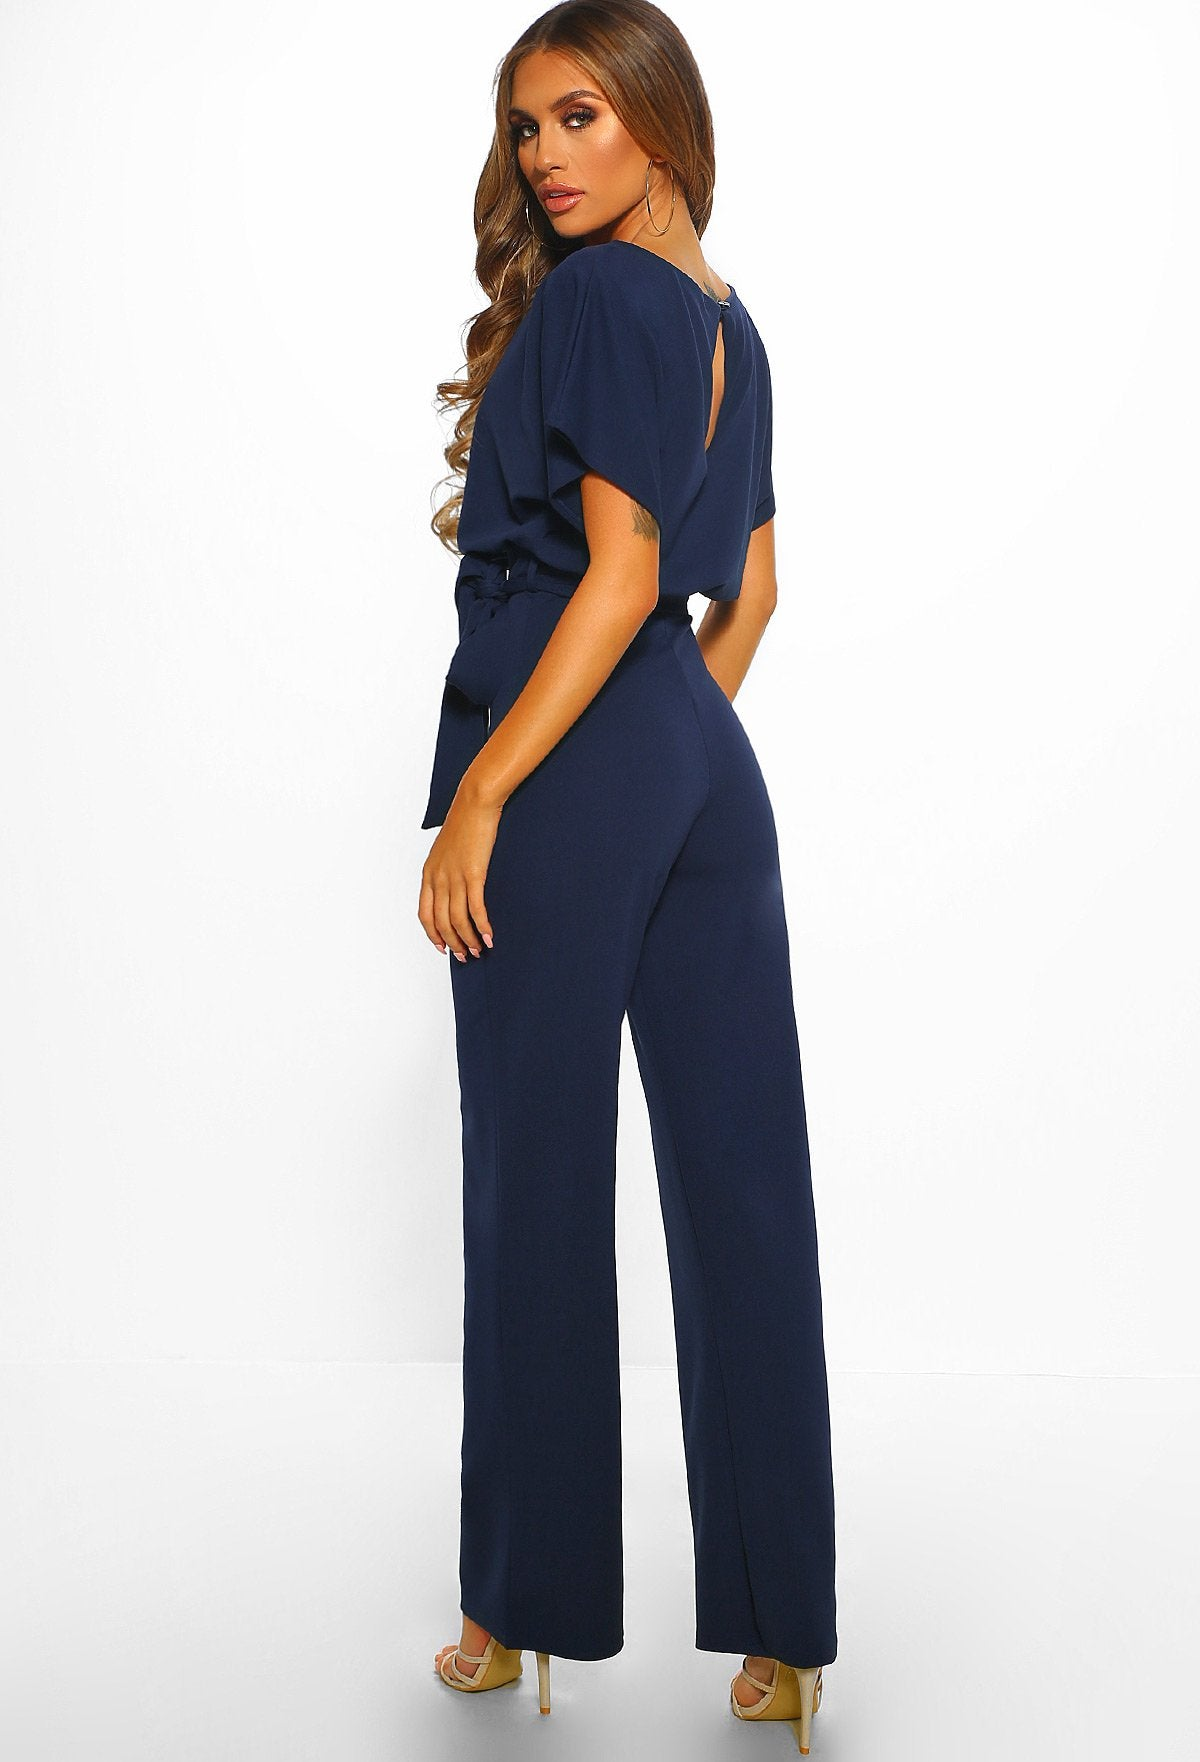 1b7f72e4b692 Oh So Glam Navy Belted Wide Leg Jumpsuit – Pink Boutique UK